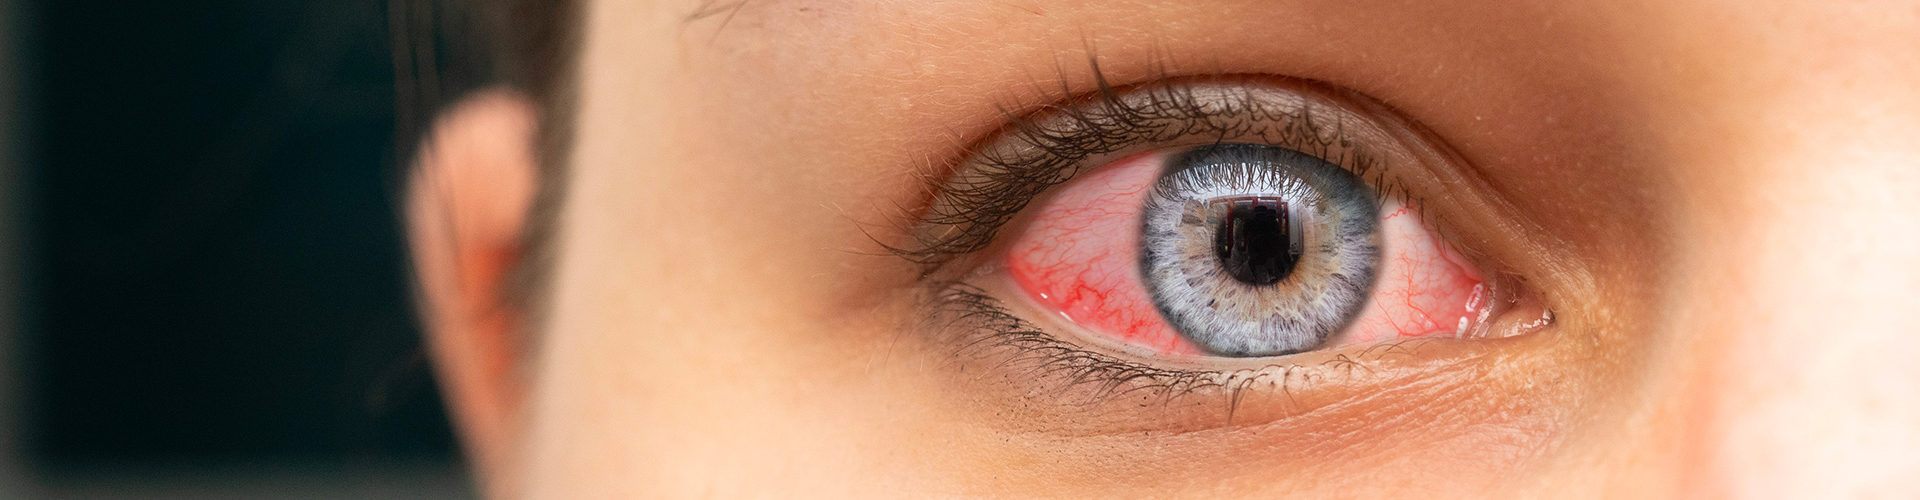 Yeux rouges, quand consulter ?